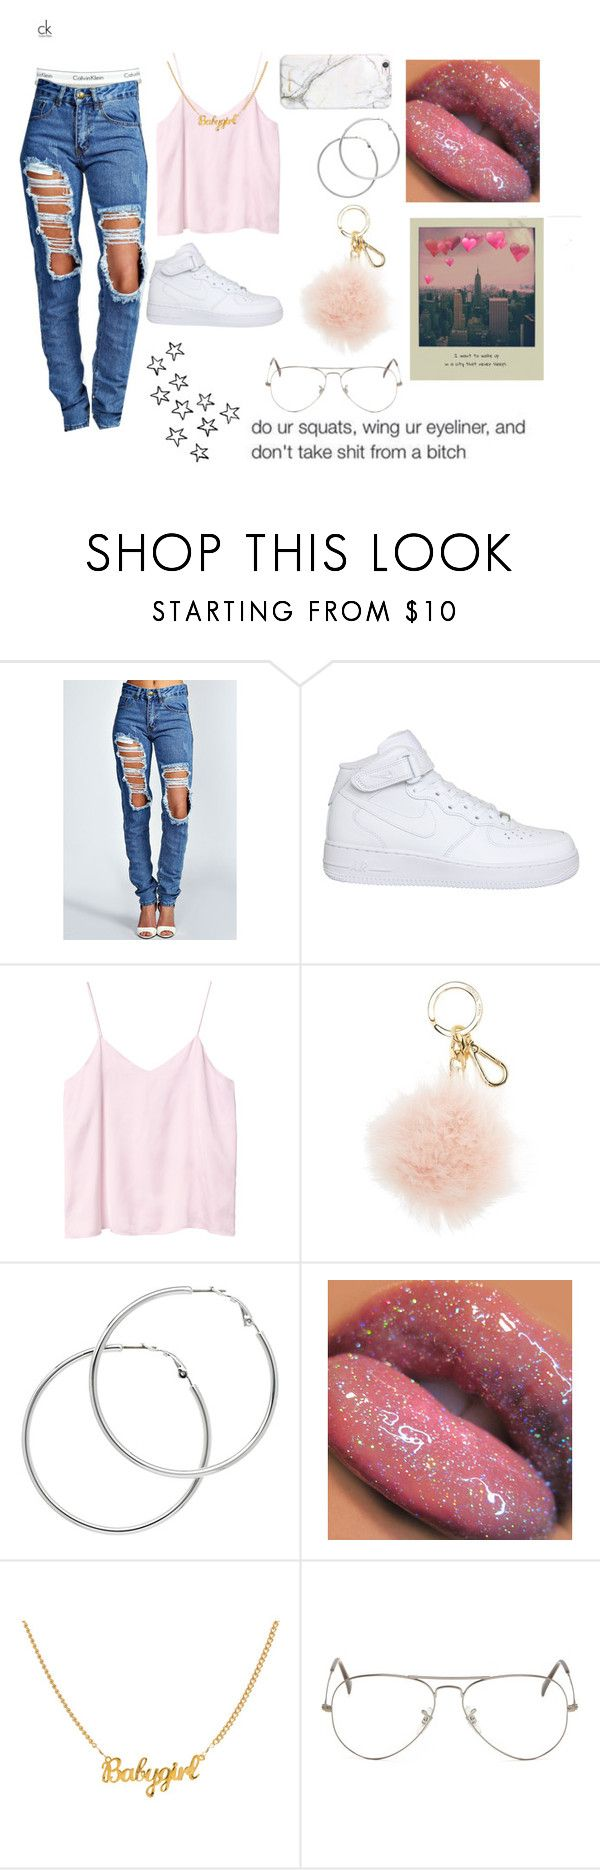 """Su Veneno"" by linagbotello on Polyvore featuring Calvin Klein, Boohoo, NIKE, Monki, MICHAEL Michael Kors, Melissa Odabash, Ray-Ban and russell+hazel"